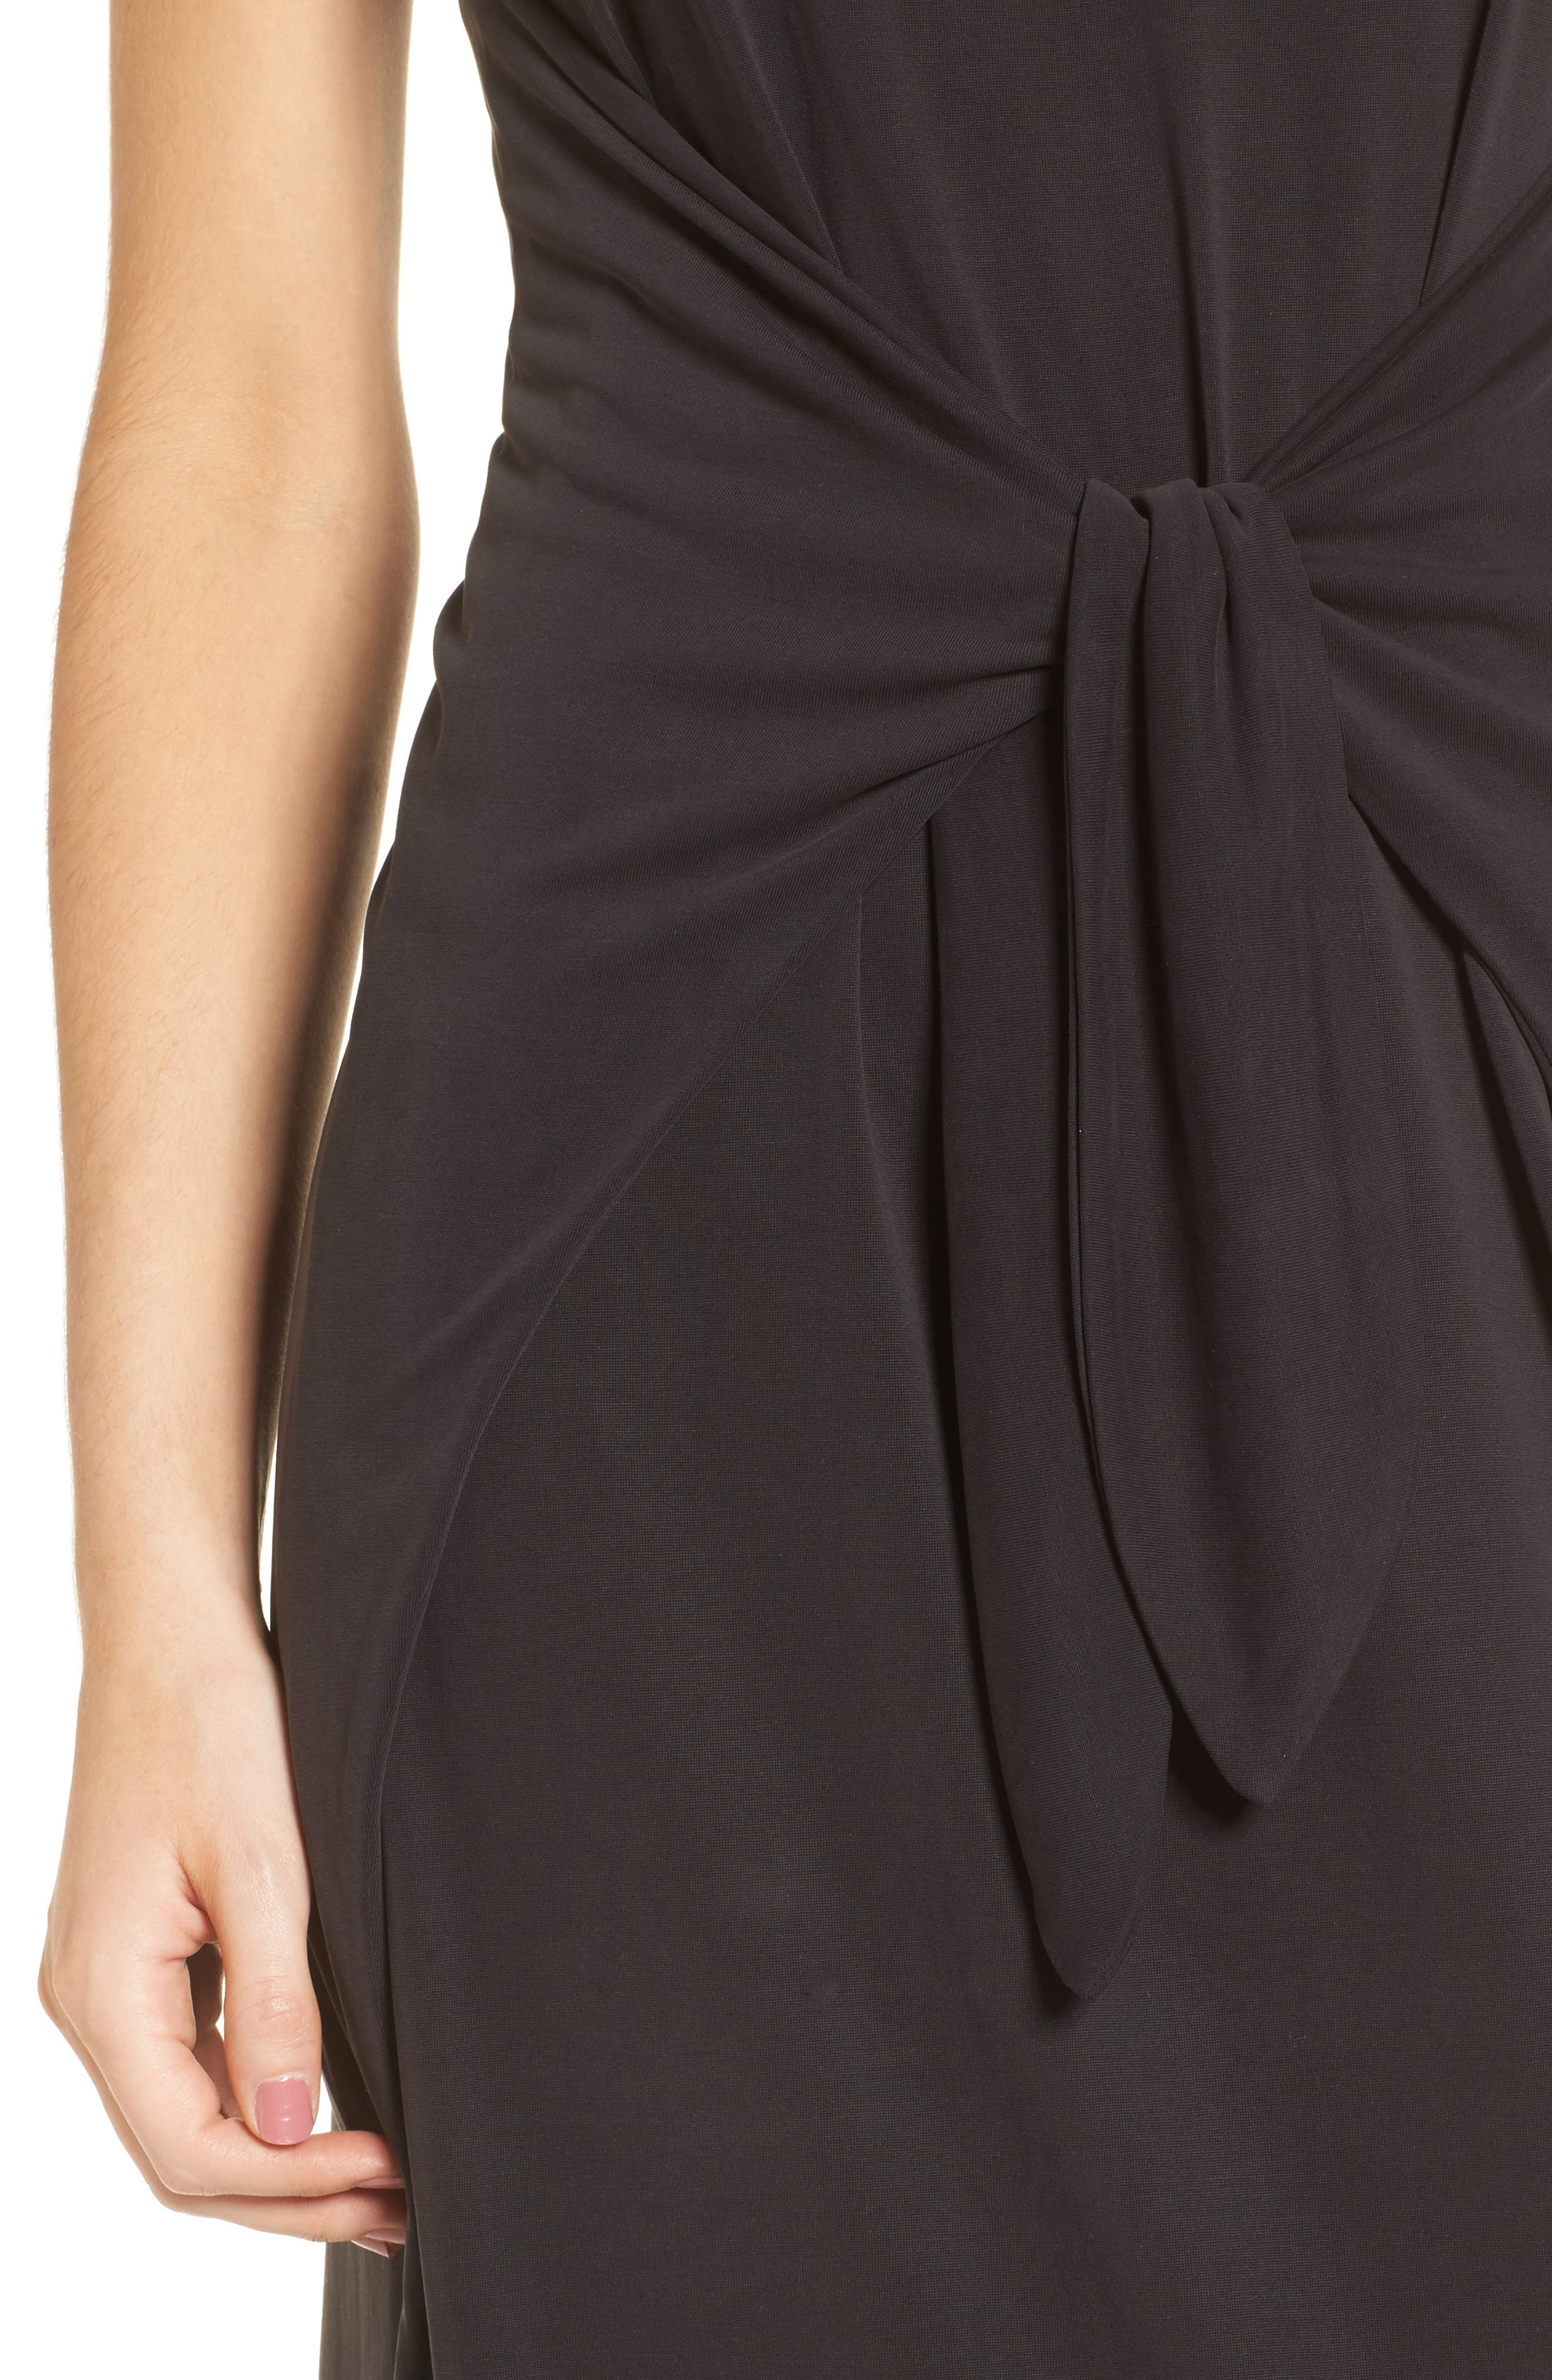 Knotted Midi Dress,                             Alternate thumbnail 4, color,                             Black